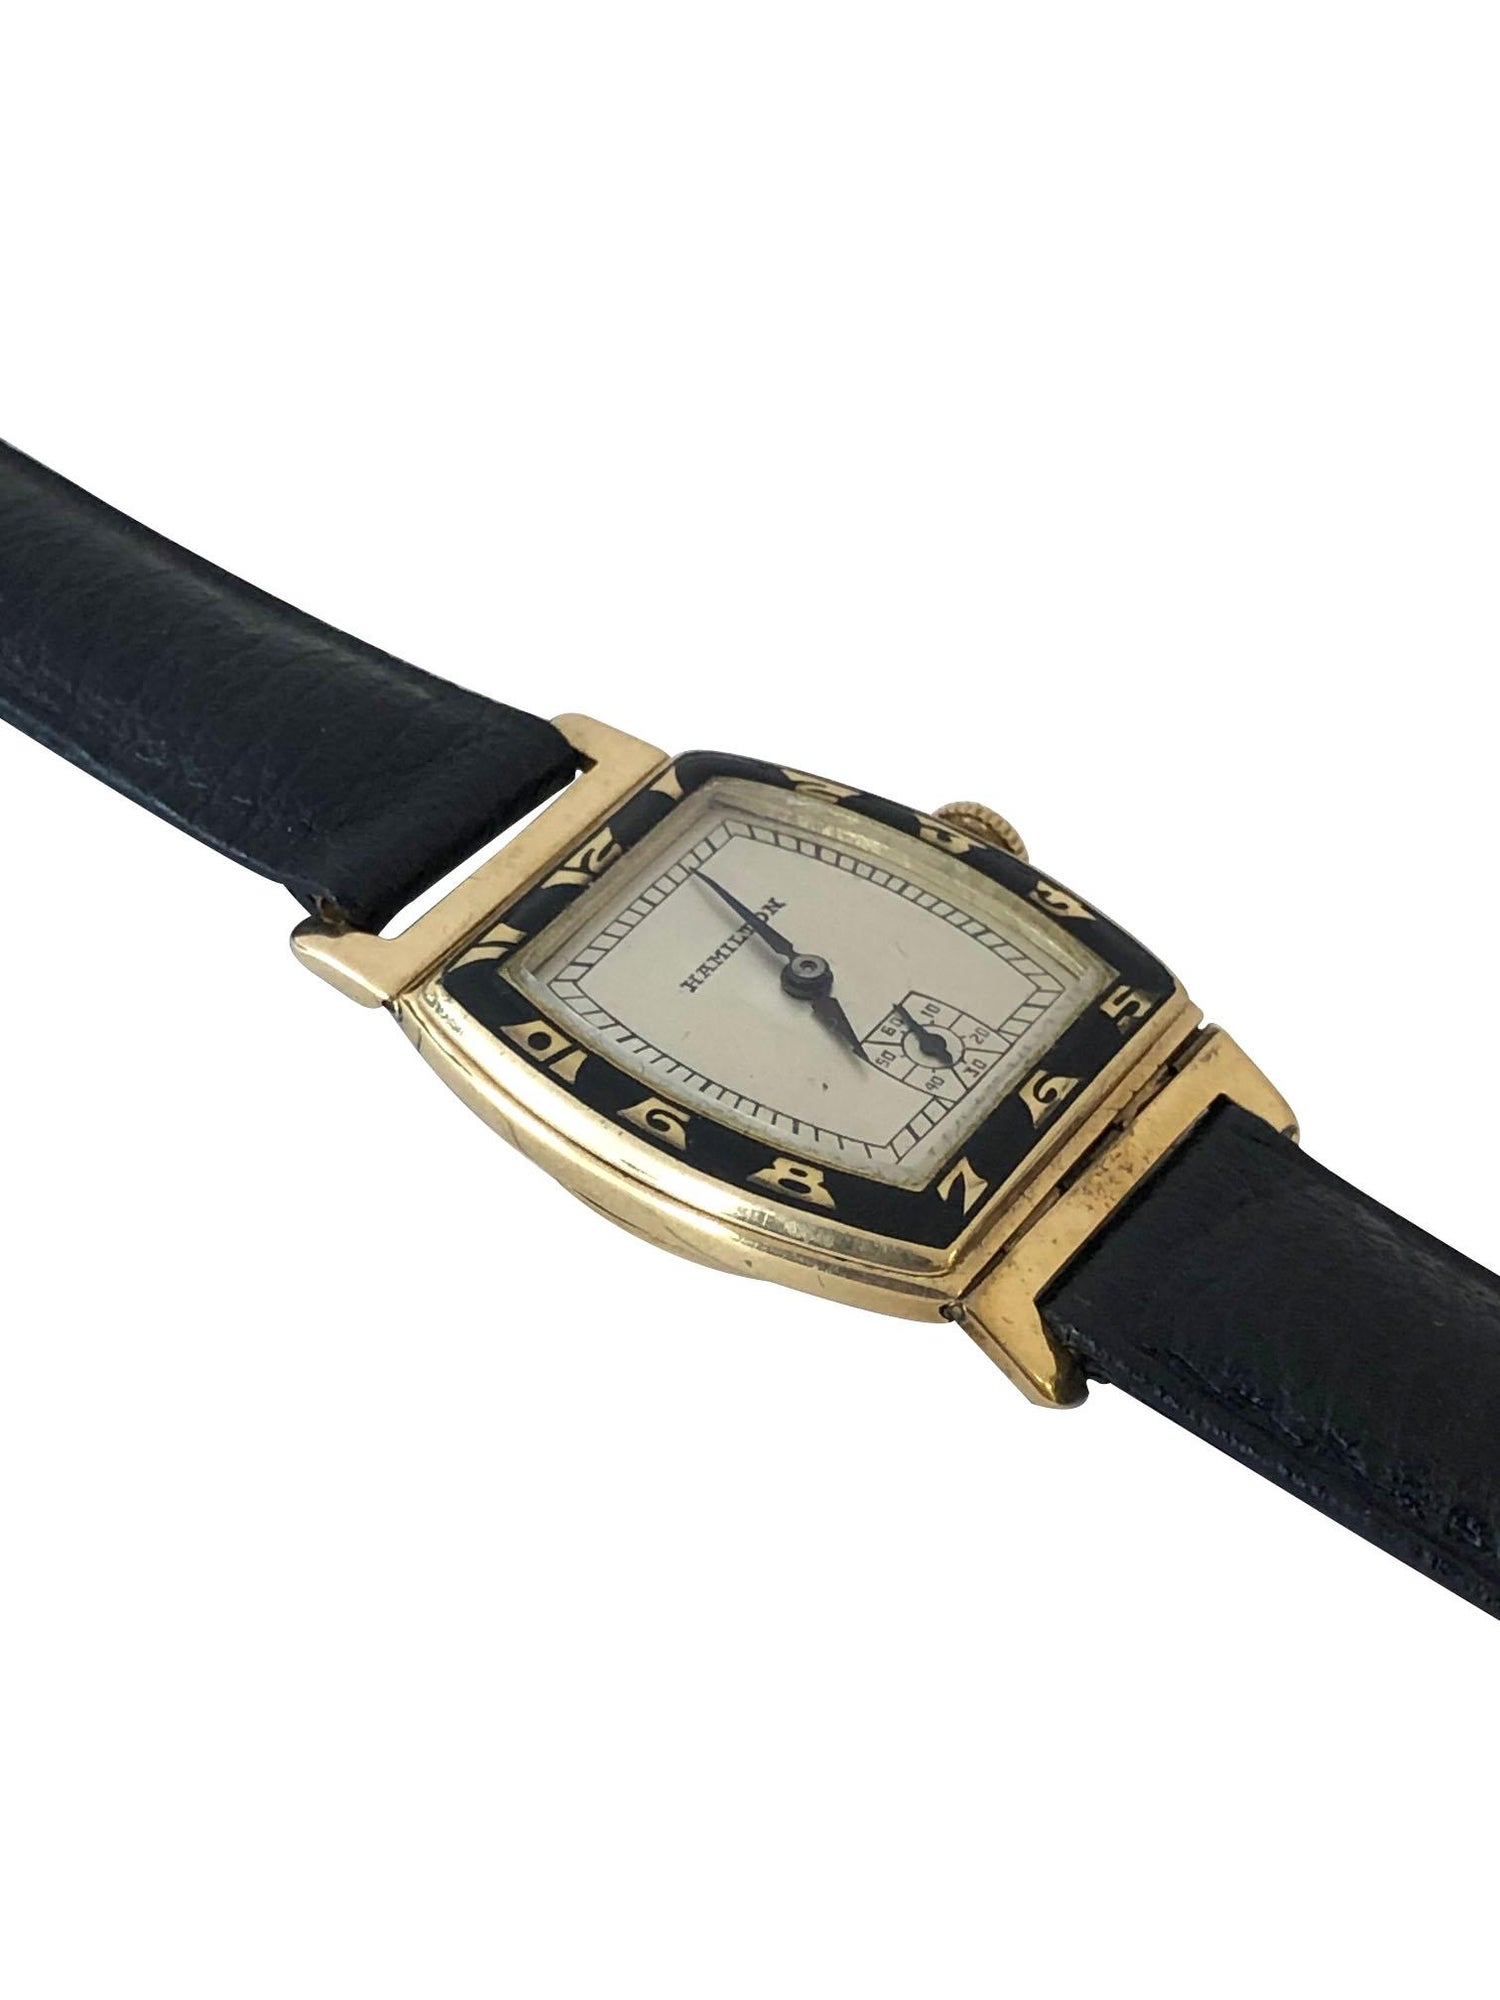 Hamilton Coronado 1930s Gold And Enamel Wristwatch At 1stdibs